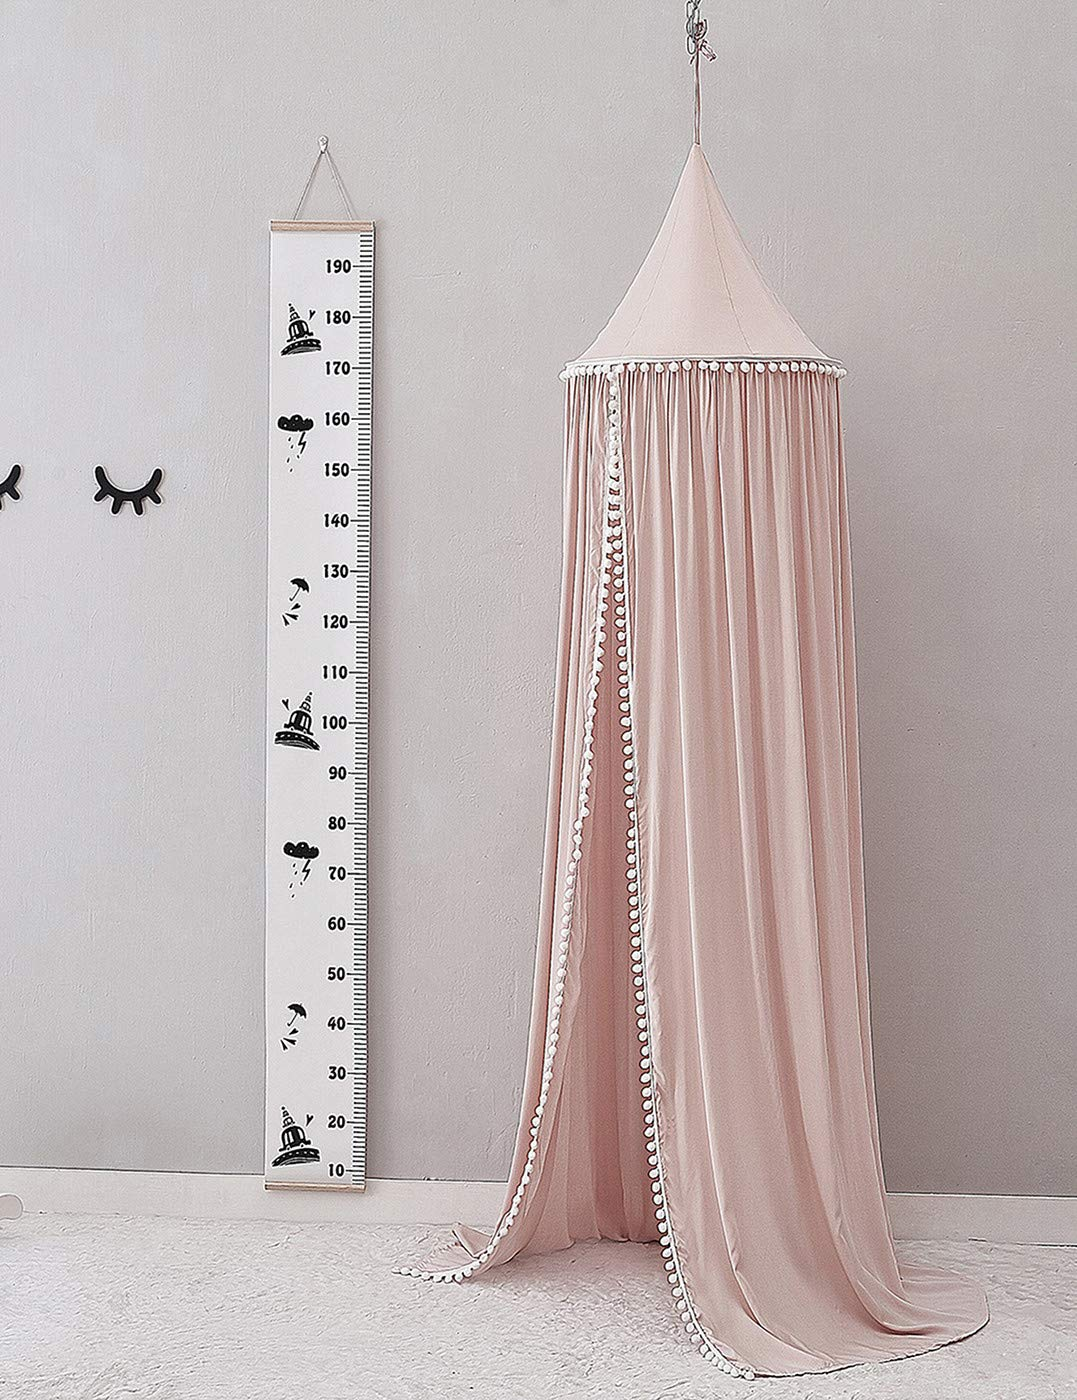 BAIHUODRESS Bed Canopy for Children Round Dome Cotton Mosquito Net Room Decoration Indoor Outdoor Playing Games House Reading//Crib Nook Height 245cm//96.5 Kids Princess Play Tents